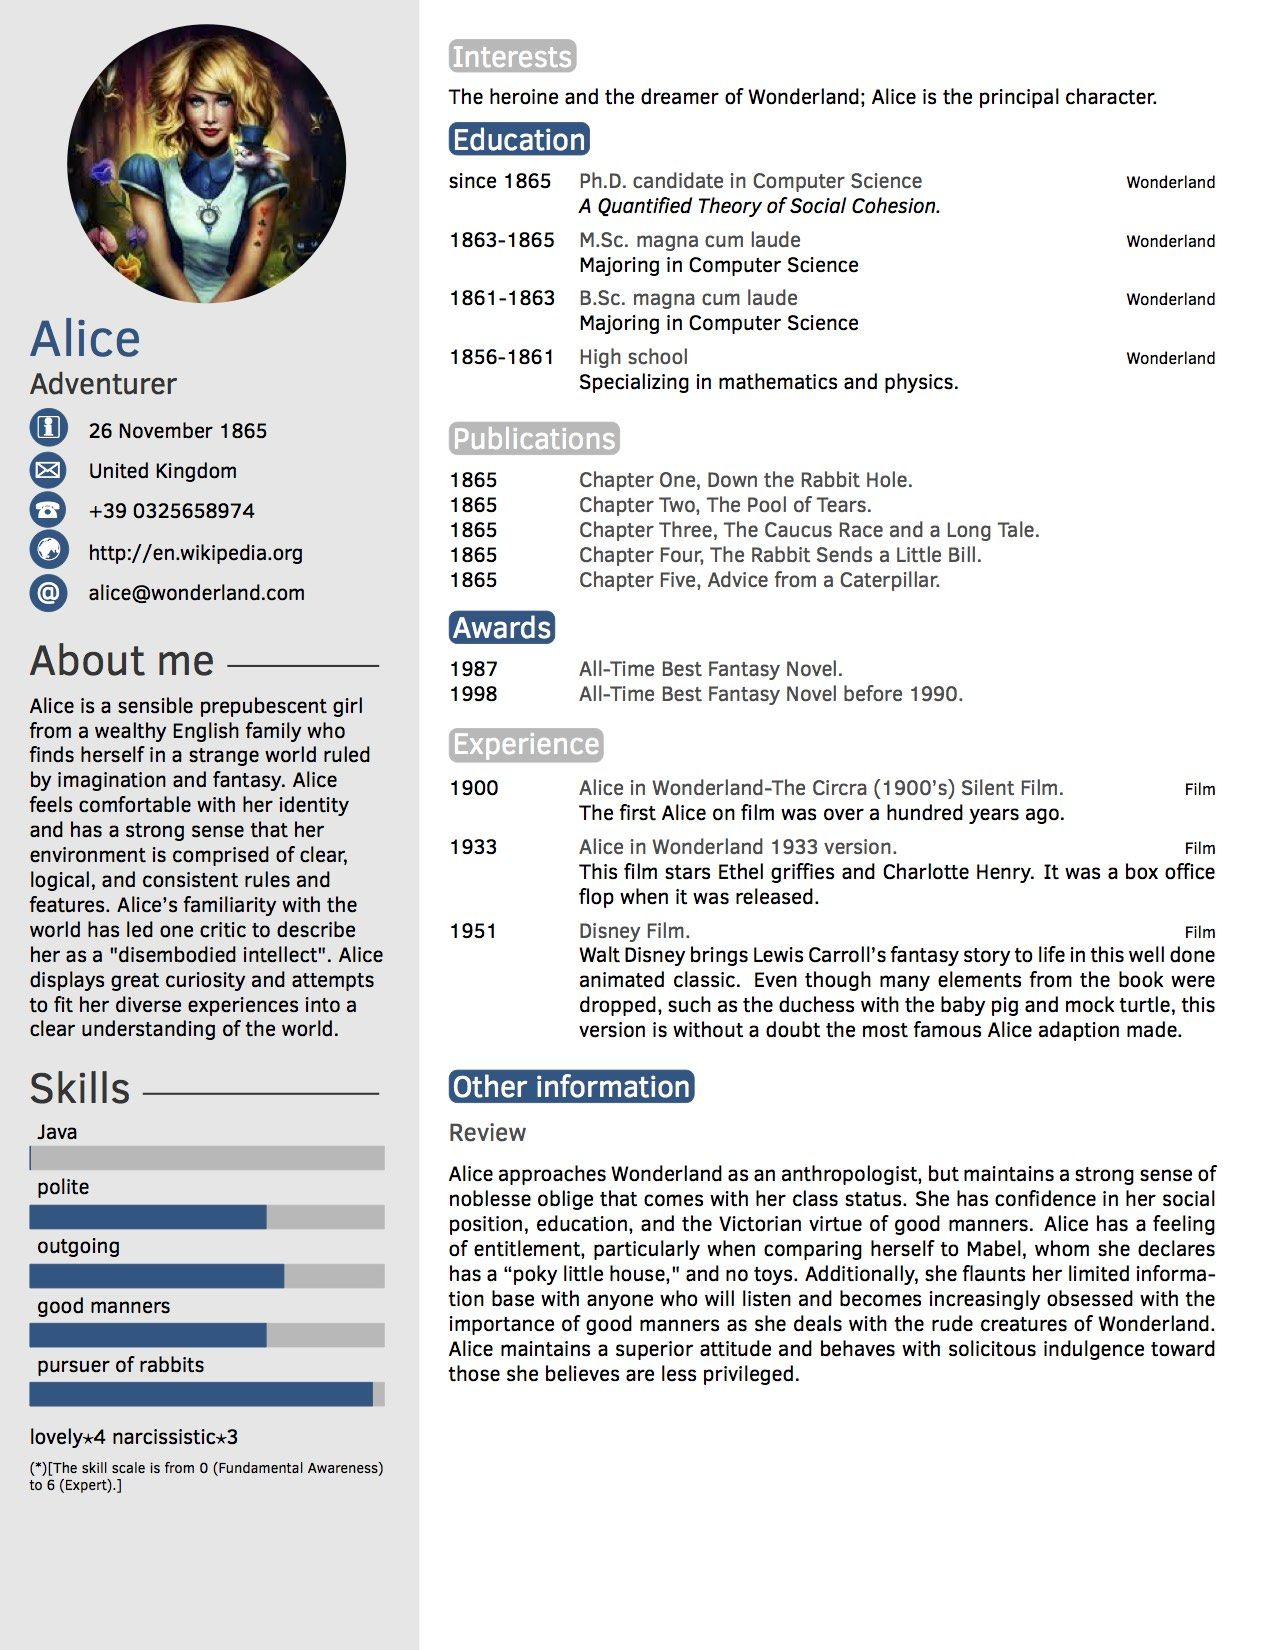 Template Curriculum Vitae Pinravignesh On Template  Pinterest  Resume Cv And Template